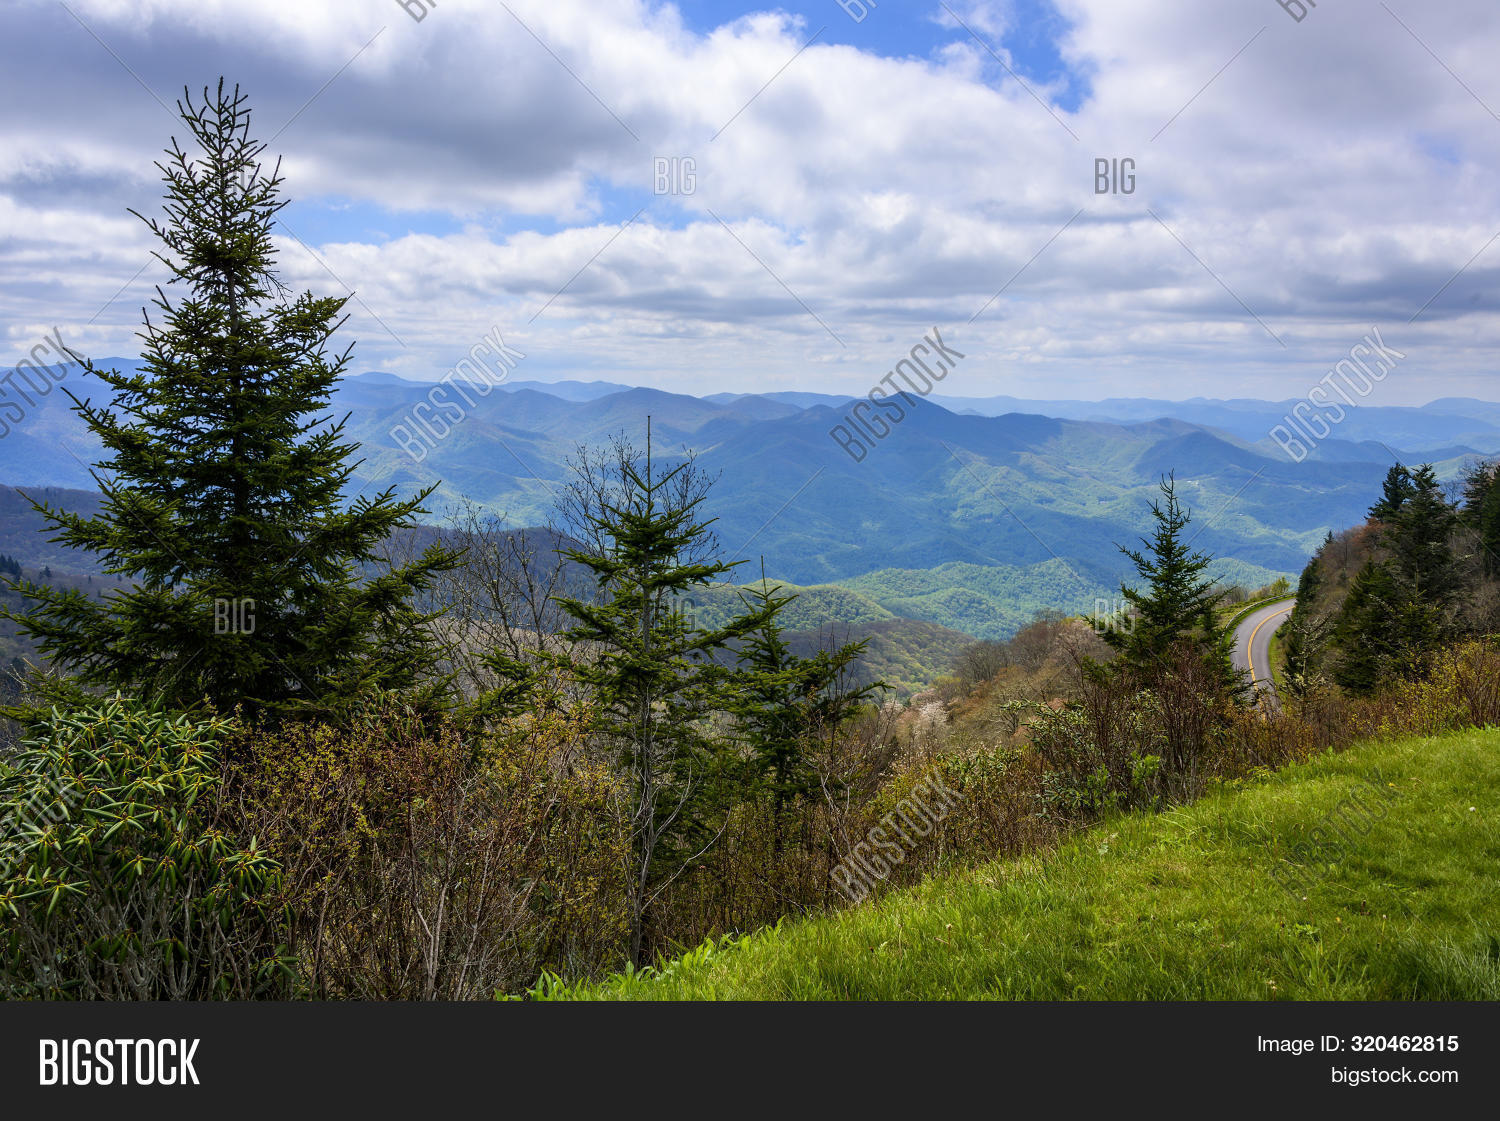 balsam,blue,carolina,clouds,color,colorful,country,countryside,drive,forest,fur,grass,green,landscape,mountain,natural,nature,nc,north,outdoors,overlook,parkway,ridge,road,rural,scene,scenery,scenic,sky,smoky,spruce,sunny,tourism,travel,tree,view,western,wilderness,winding,wnc